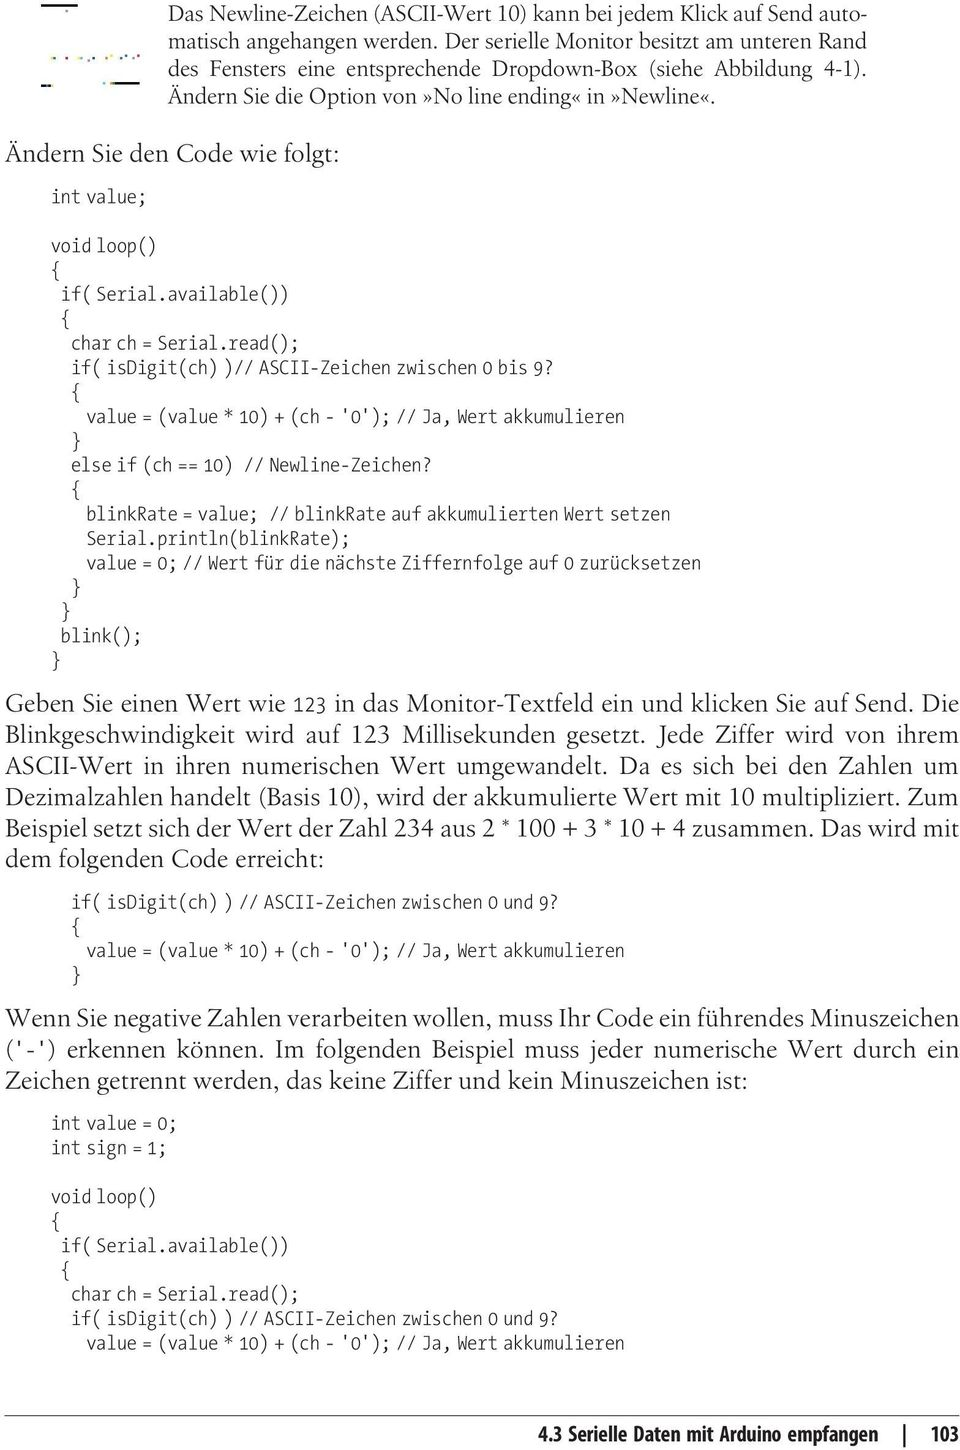 Ändern Sie den Code wie folgt: int value; void loop() if( Serial.available()) char ch = Serial.read(); if( isdigit(ch) )// ASCII-Zeichen zwischen 0 bis 9?